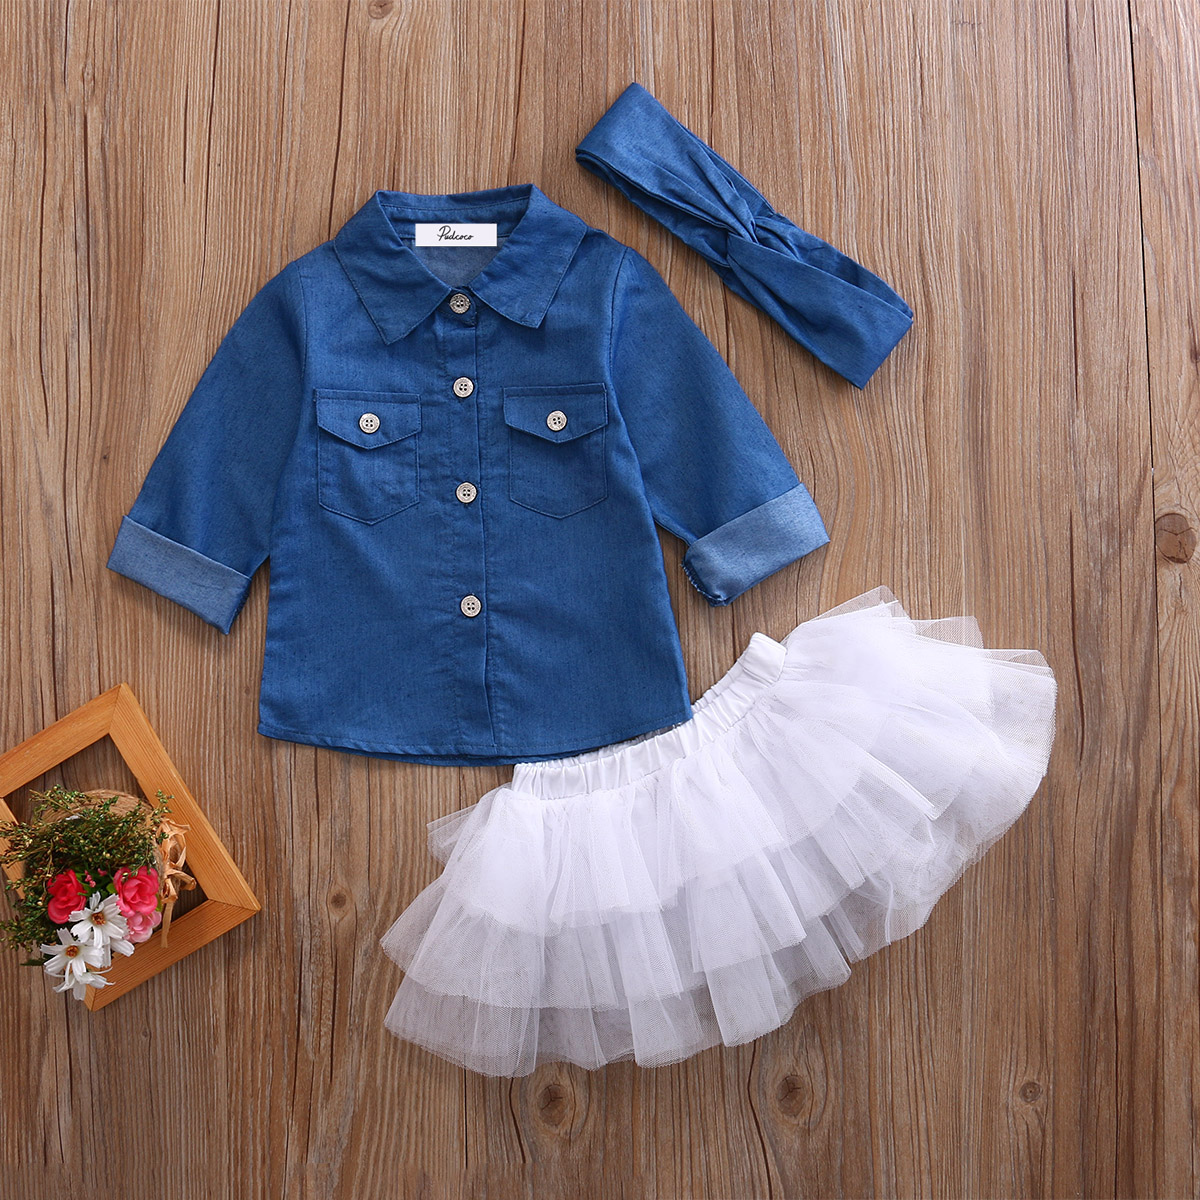 Kids Baby Girls Denim Tops T shirt+White Tutu Skirts+Headband 3pcs Outfits Clothes Set Summer Long Sleeve Children Clothing Sets princess toddler kids baby girl clothes sets sequins tops vest tutu skirts cute ball headband 3pcs outfits set girls clothing